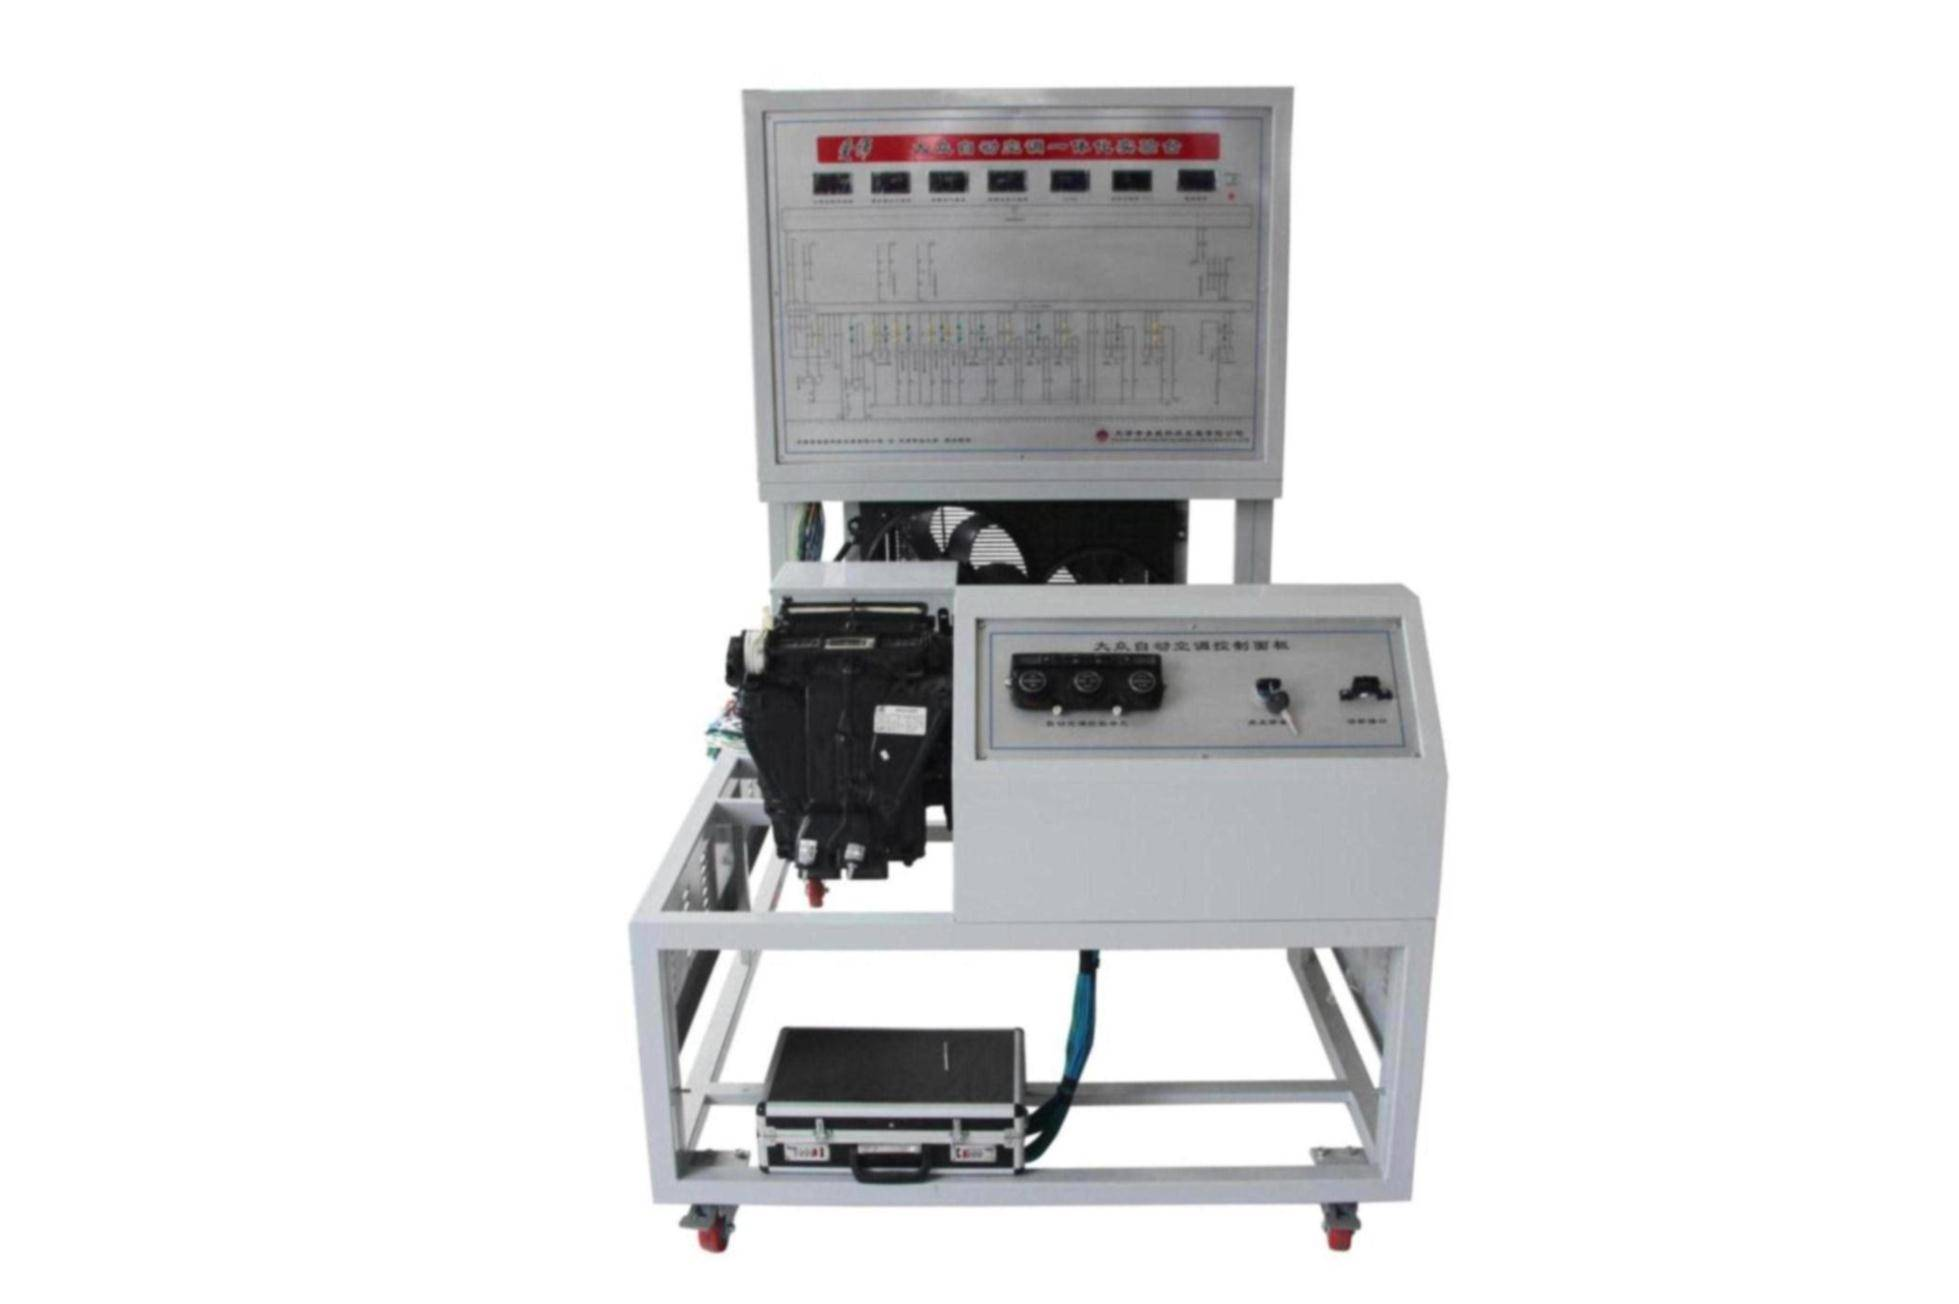 Mass integratio of automatic air conditioning electrical test bench